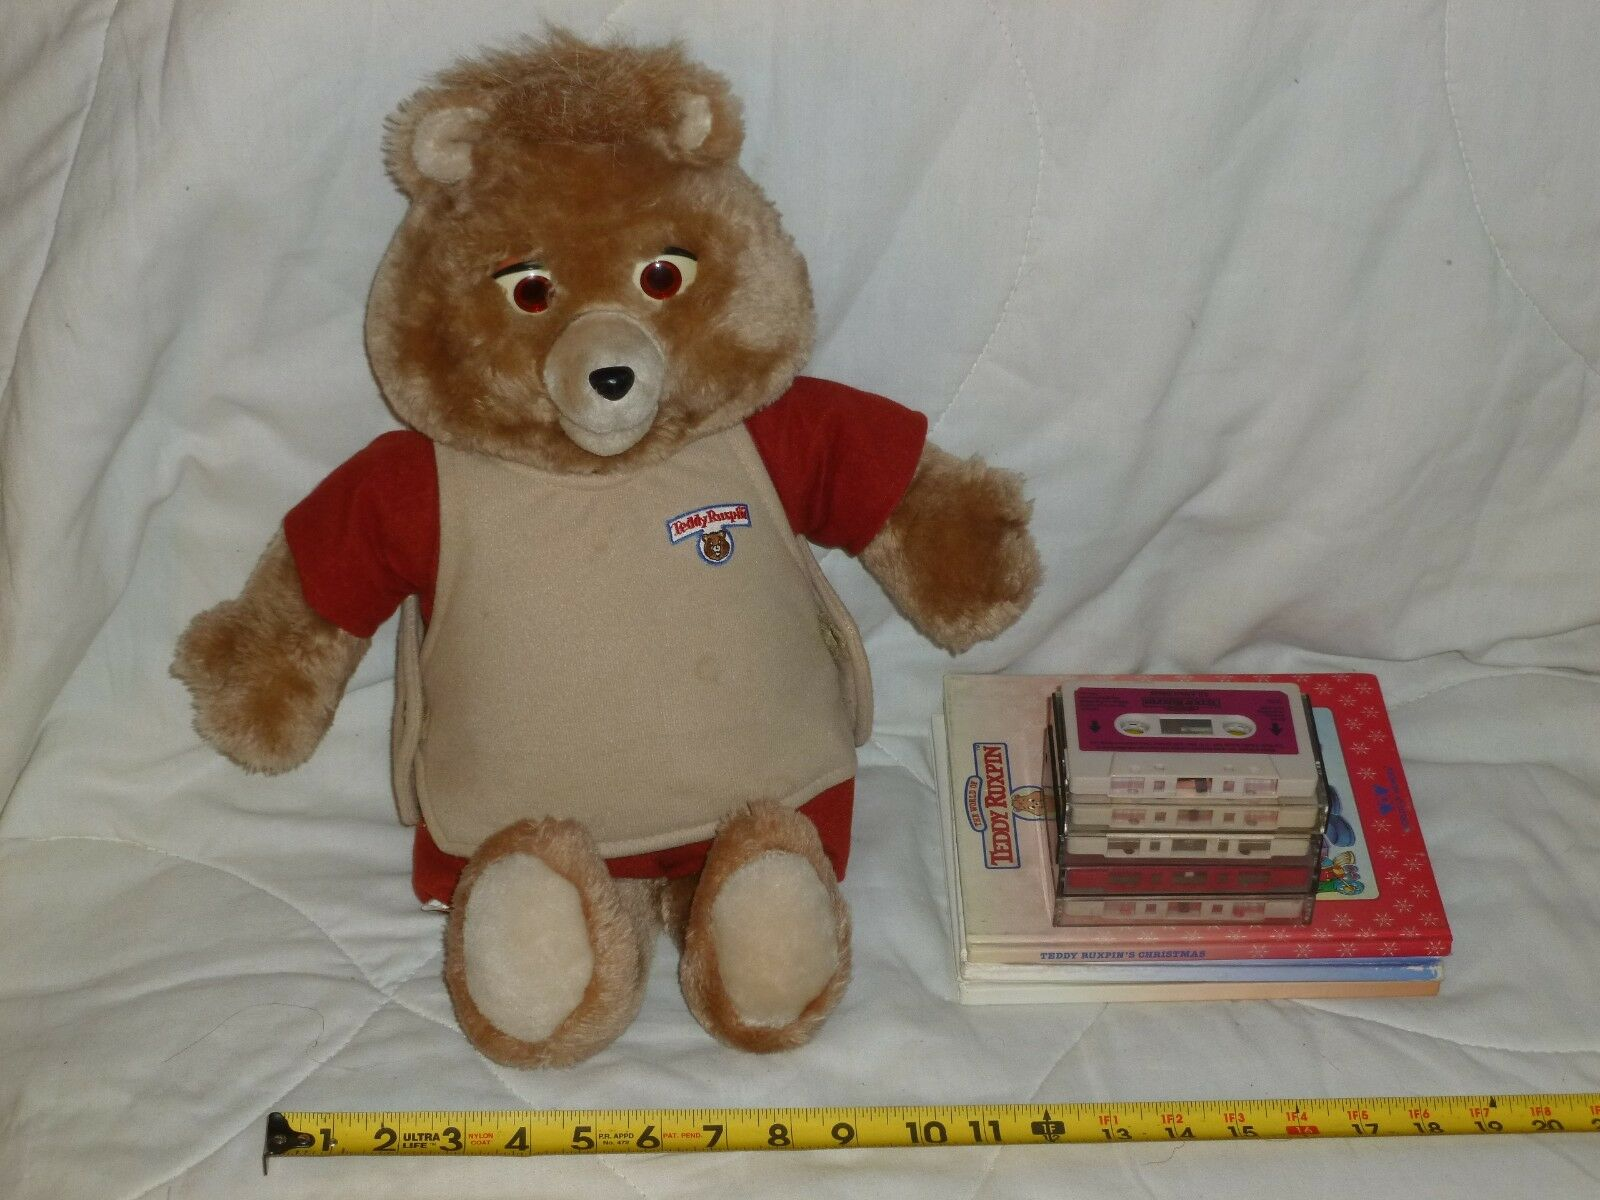 TEDDY RUXPIN - With Vest - 4 CASSETTES 3 Books - BIRTHDAY Airship XMAS Original